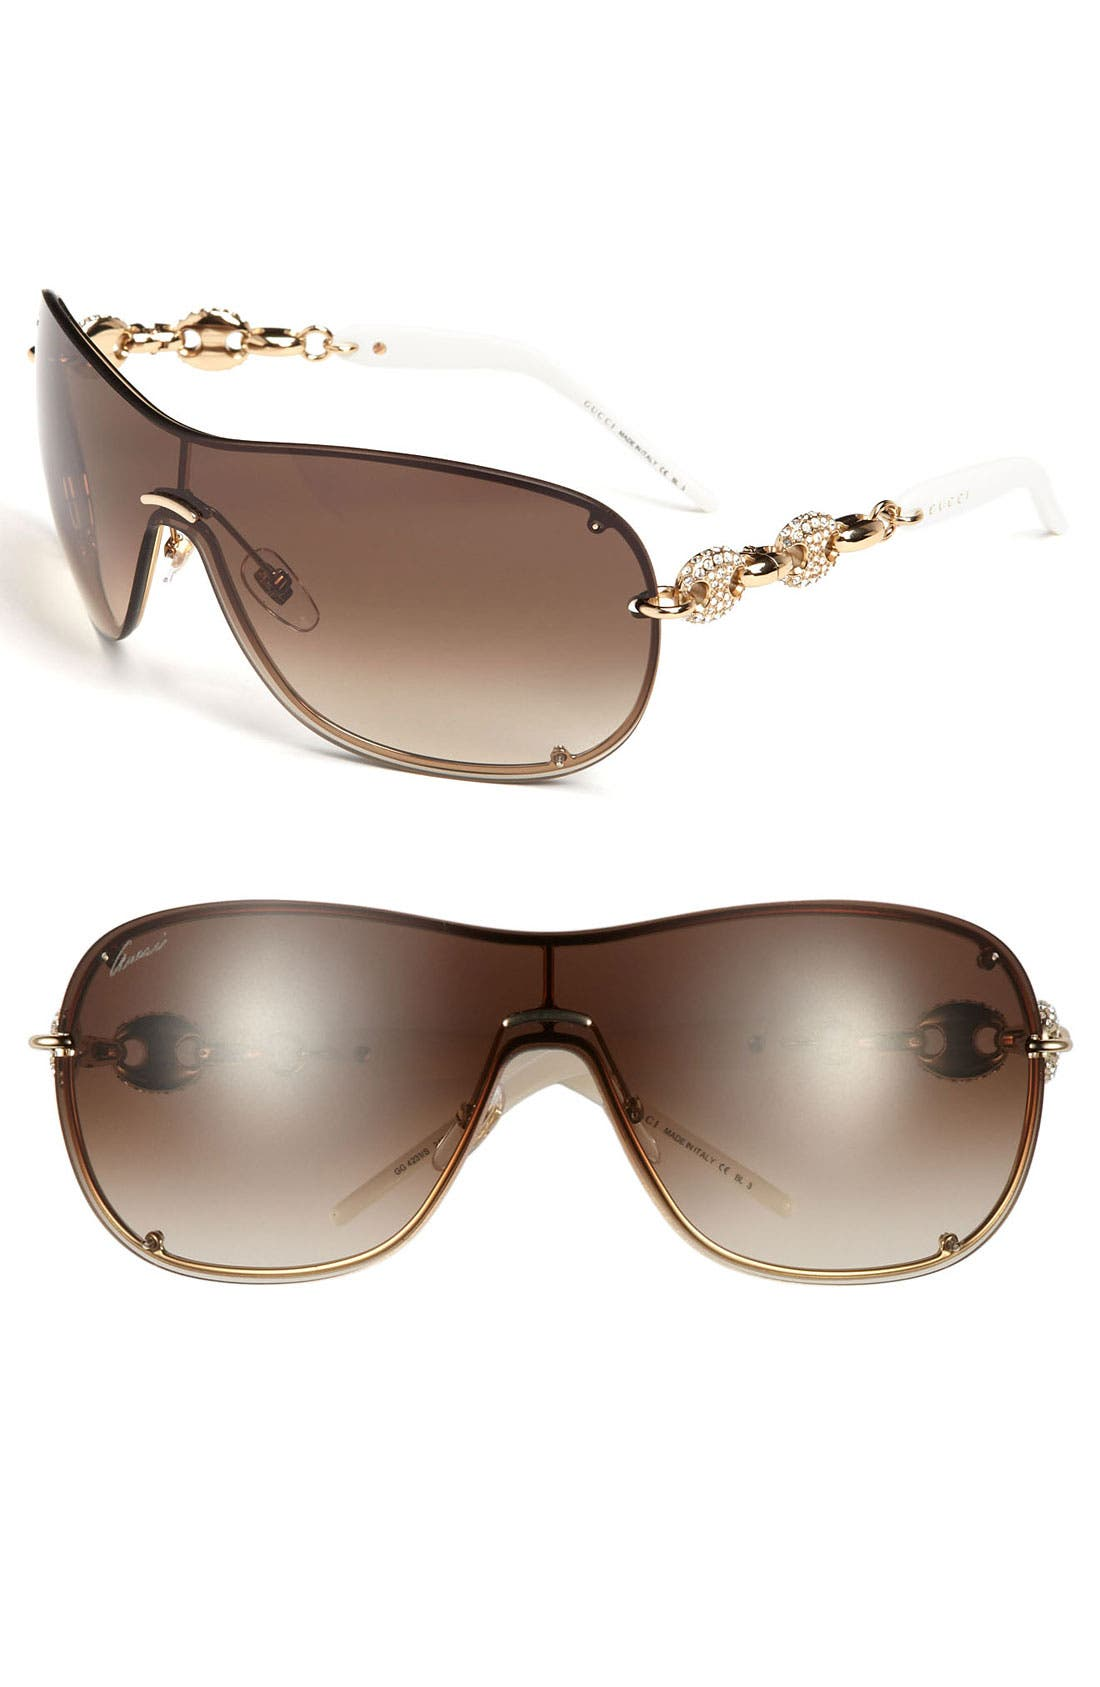 Main Image - Gucci 99mm Rimless Shield Sunglasses